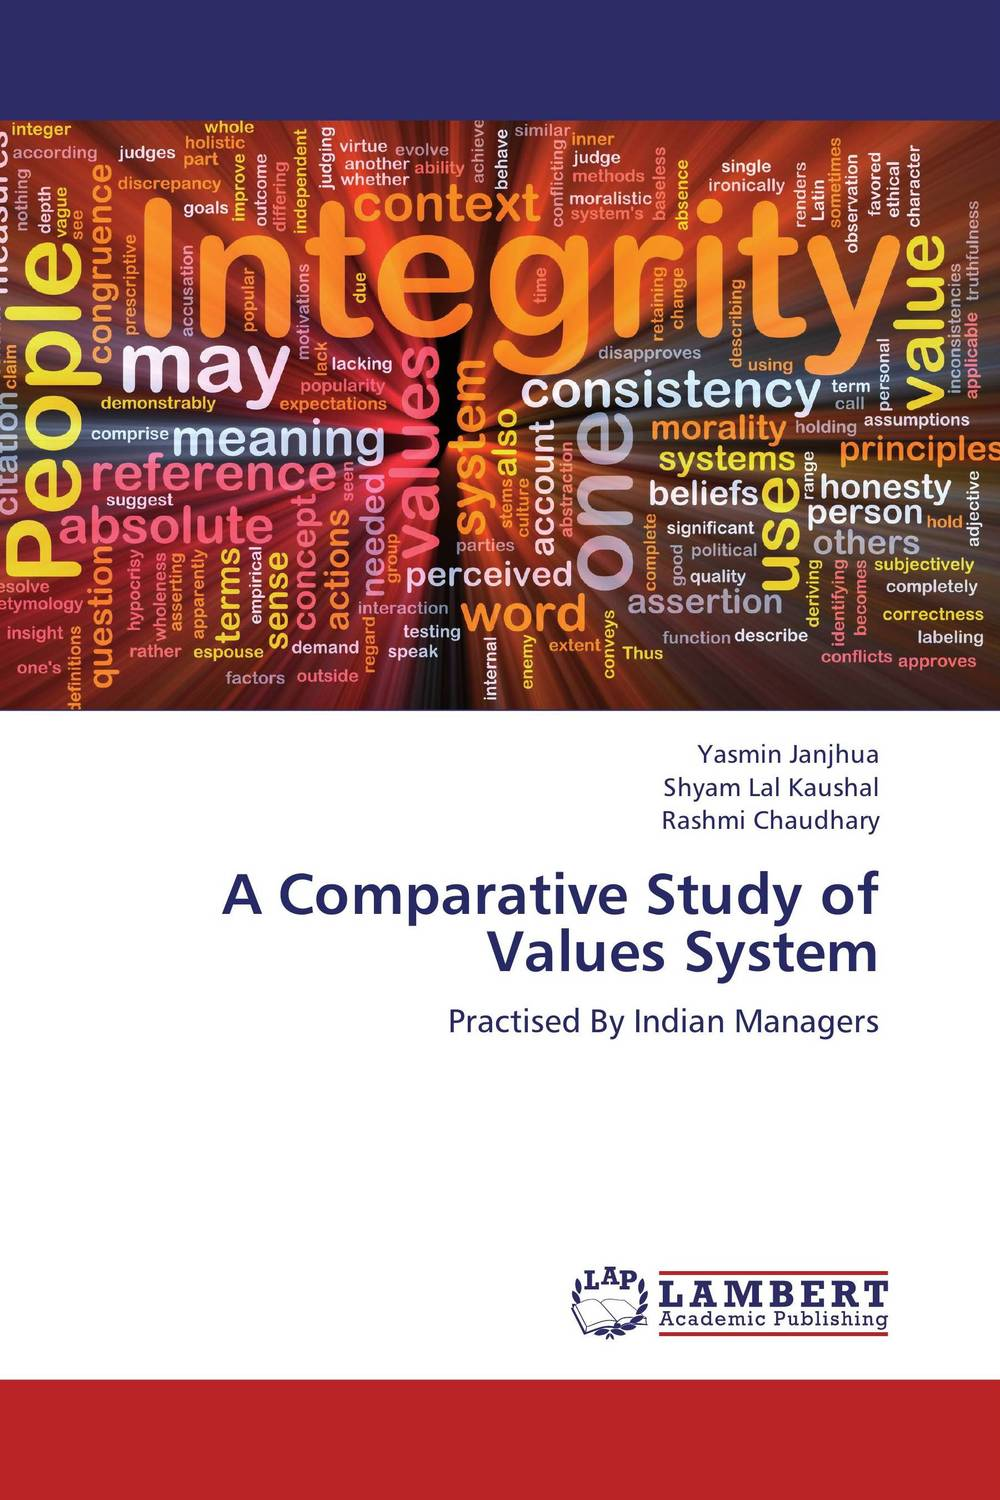 A Comparative Study of Values System sandals general managers